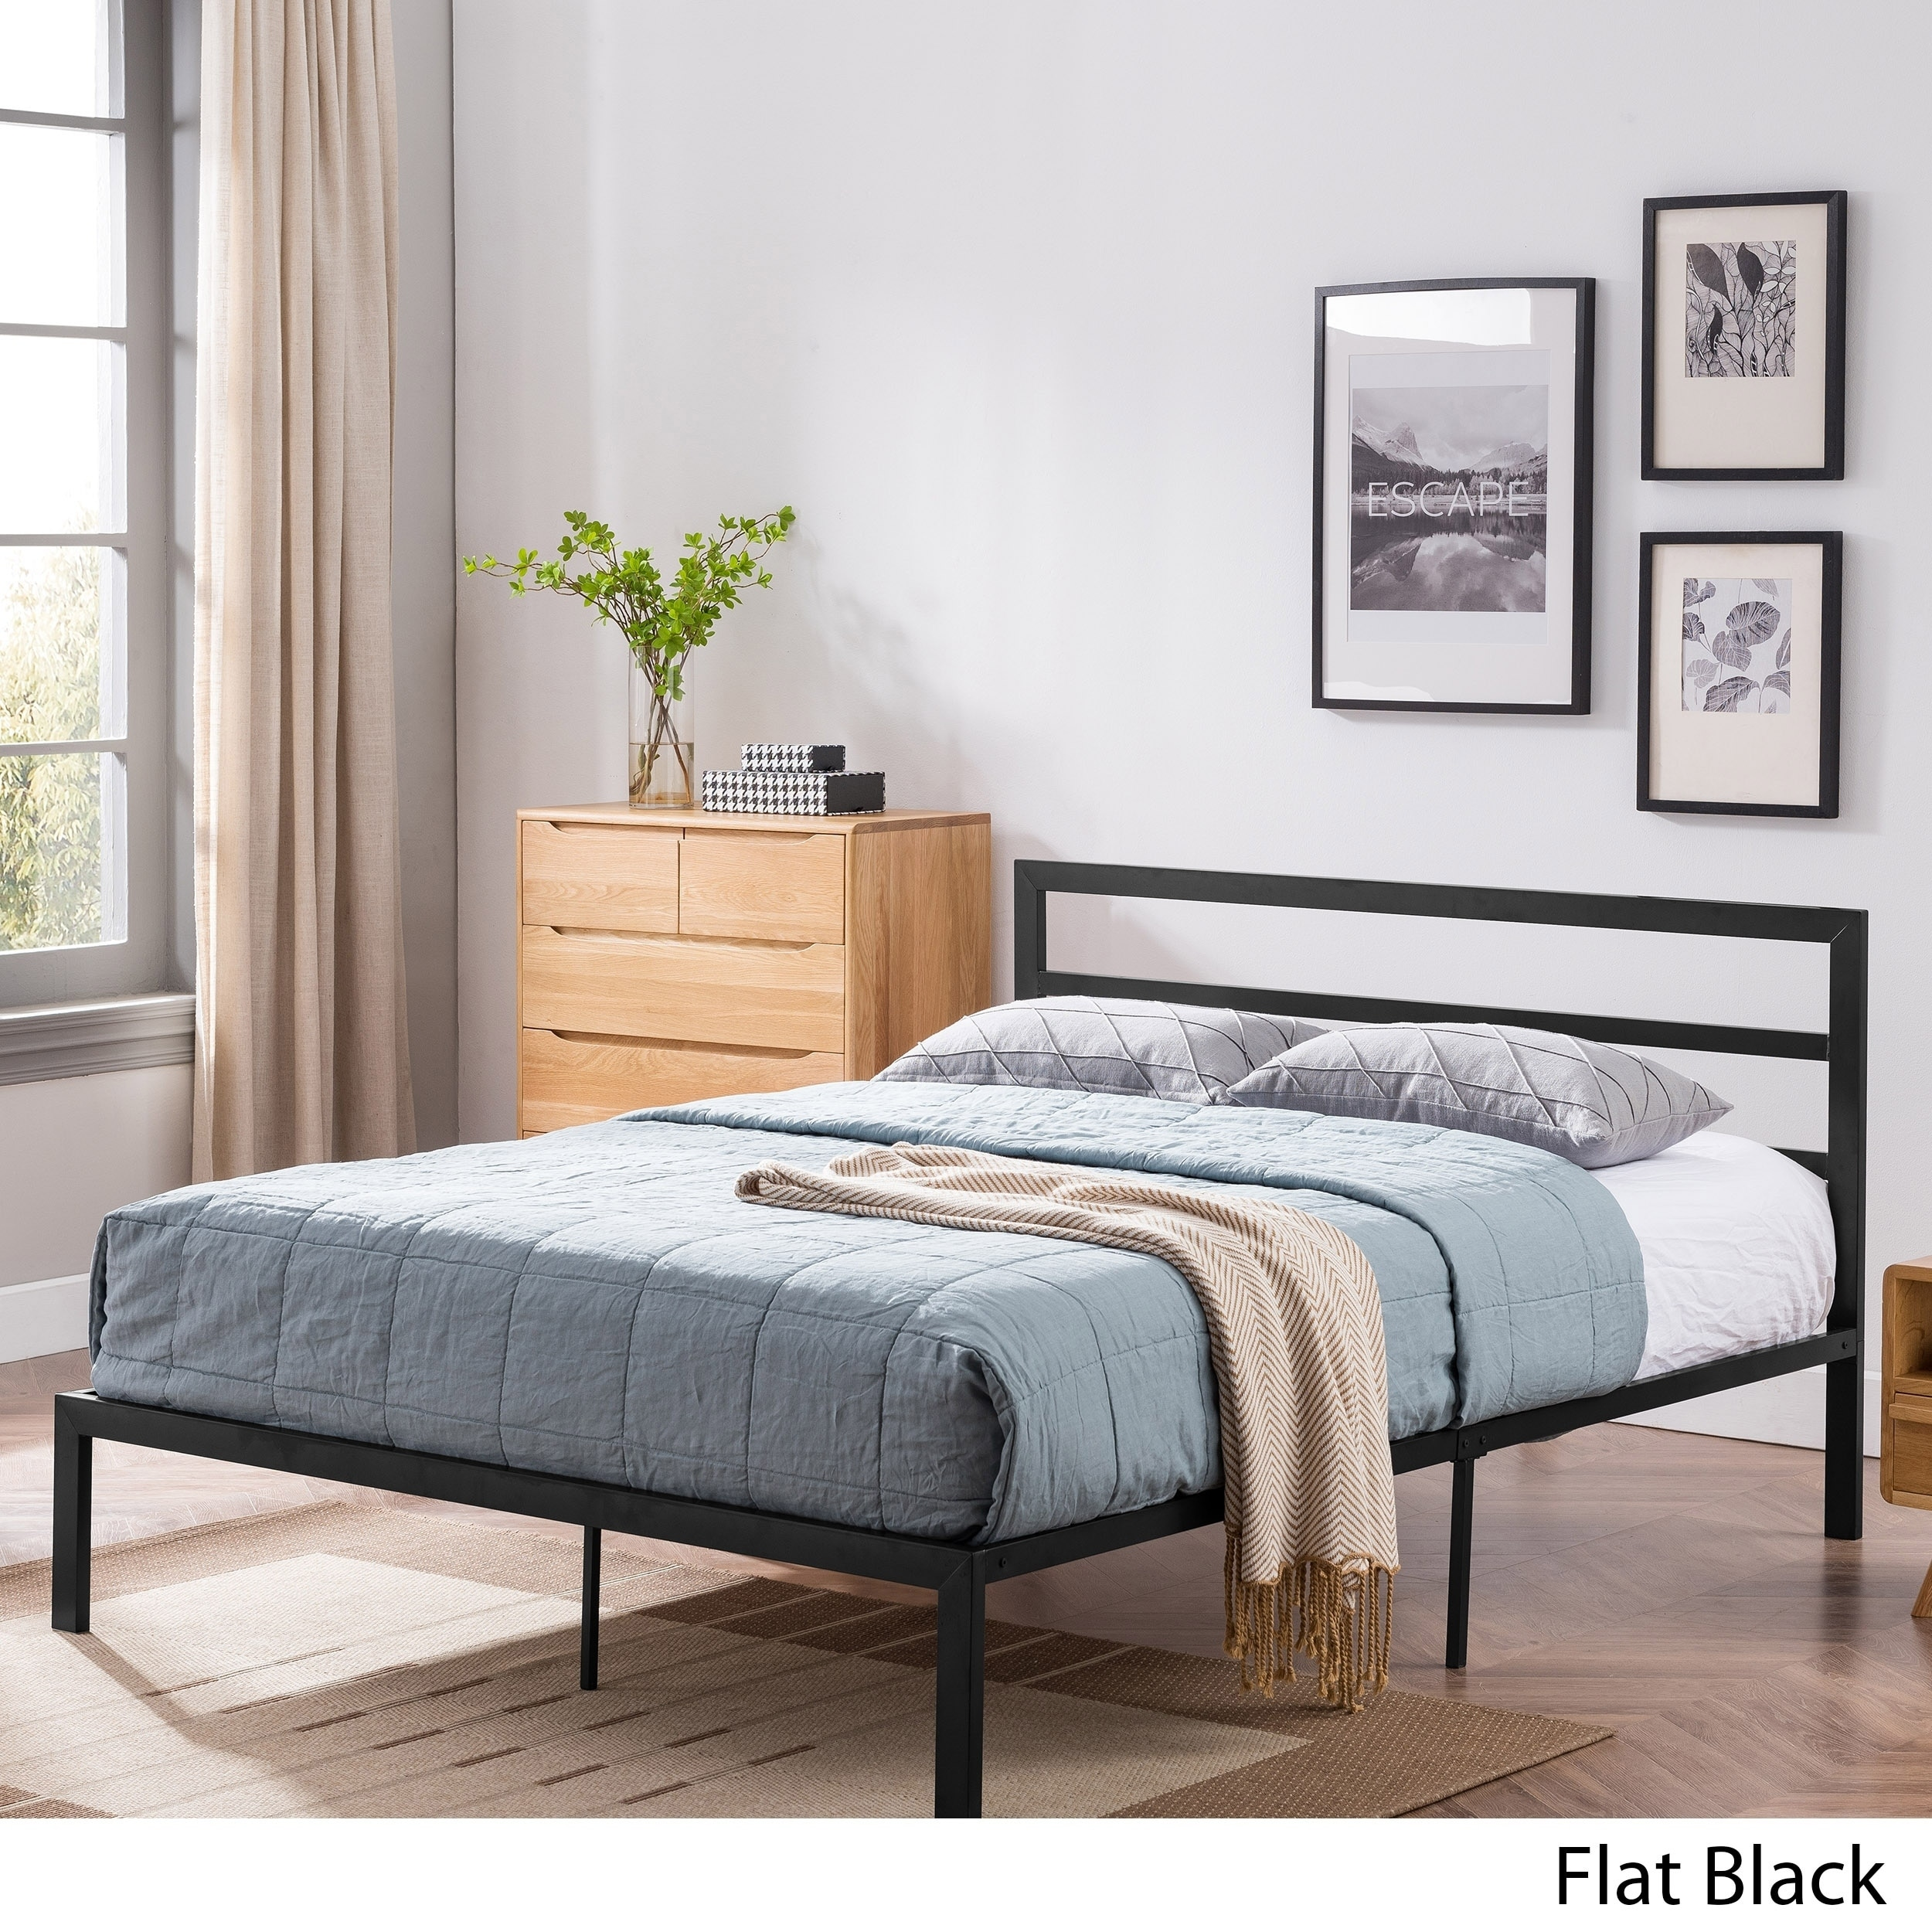 Image of: Shop Black Friday Deals On Kellen Modern Iron Queen Bed Frame By Christopher Knight Home On Sale Overstock 23055361 Hammered Copper